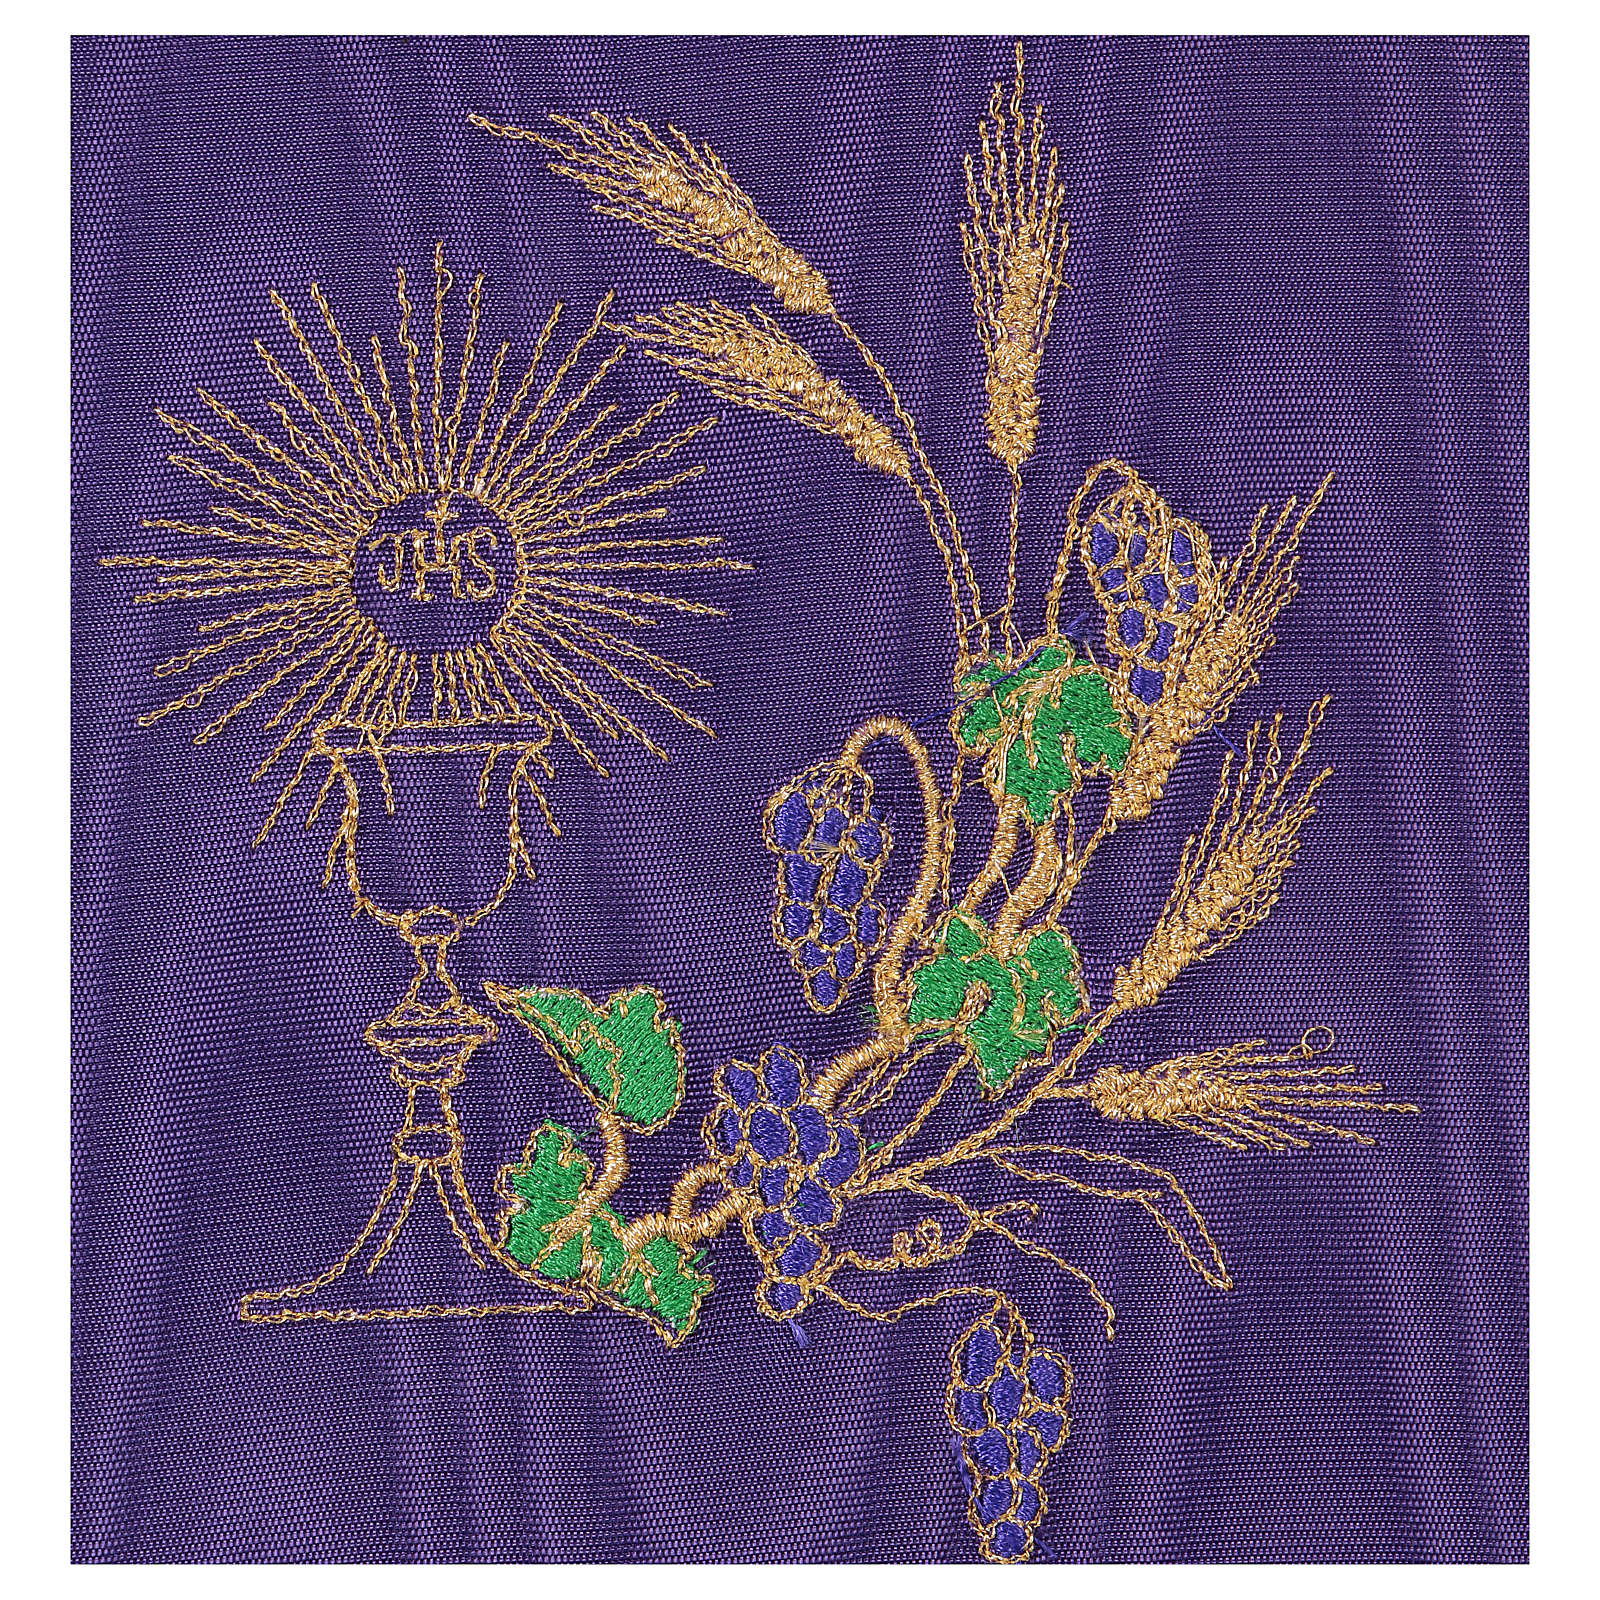 Chalice veil (pall) with chalice and grapes embroidery on purple satin 4